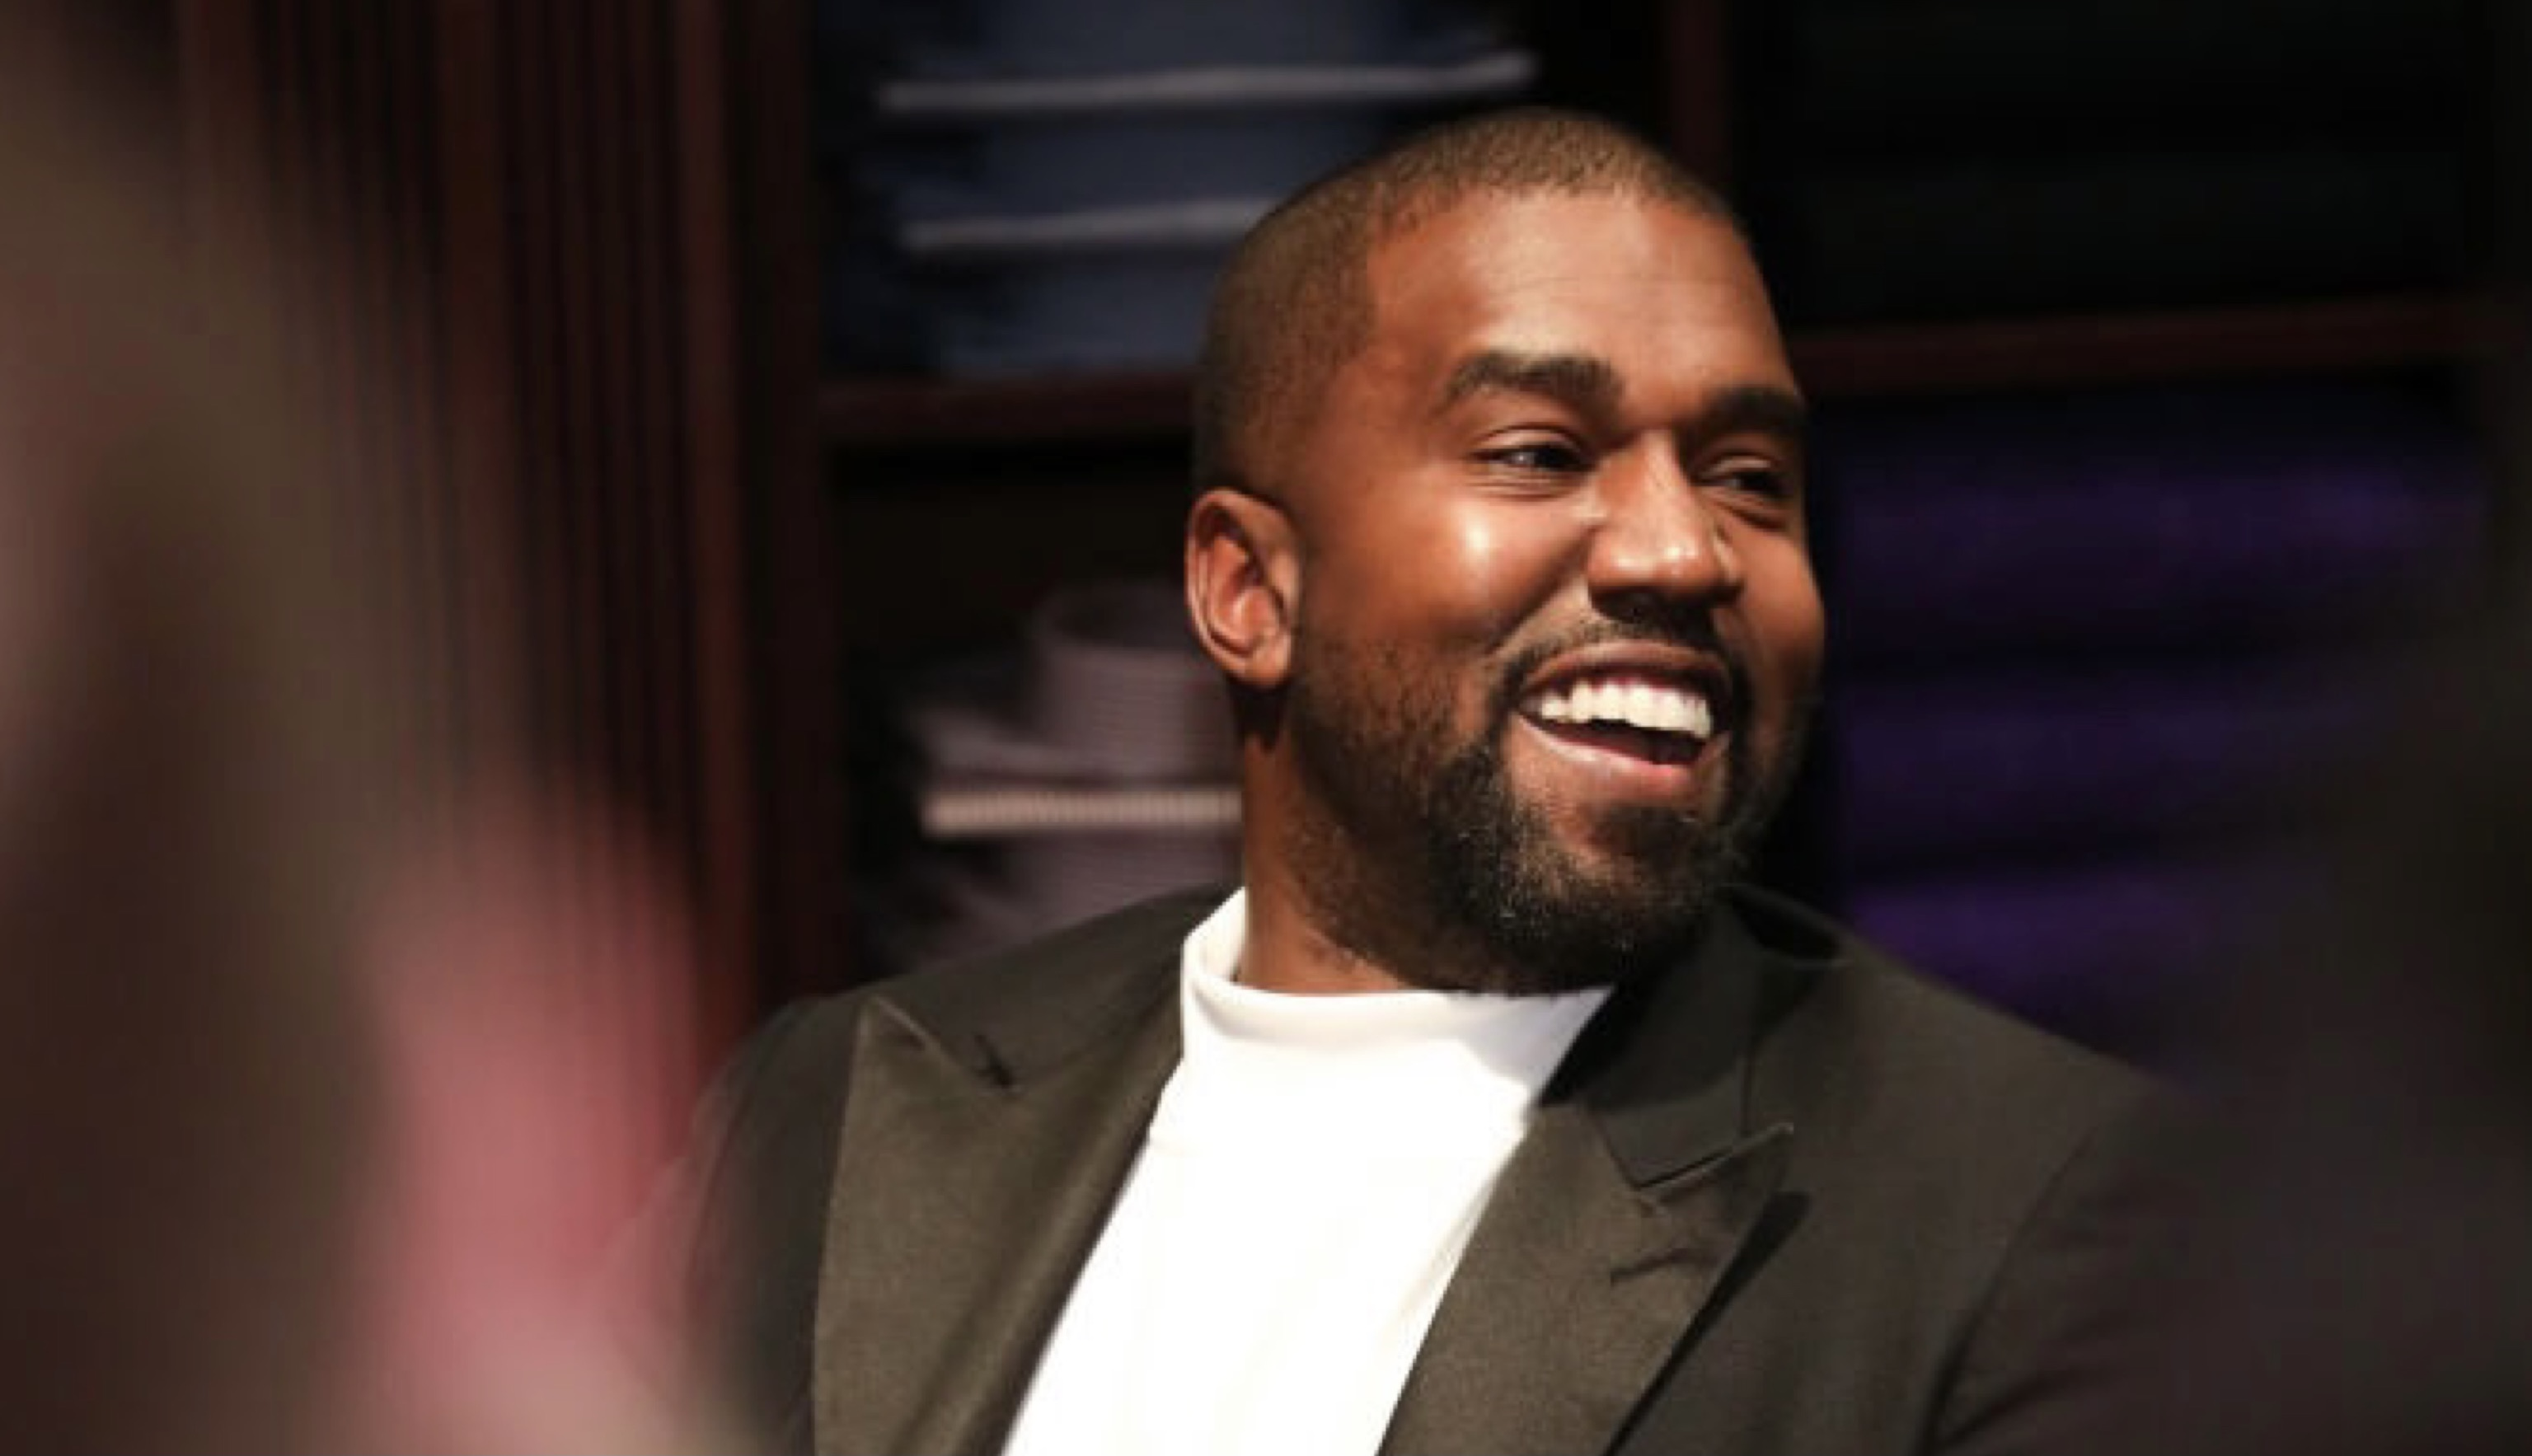 Kanye West's 'DONDA' Earns Second Biggest Spotify Debut Following Drake's 'Scorpion'